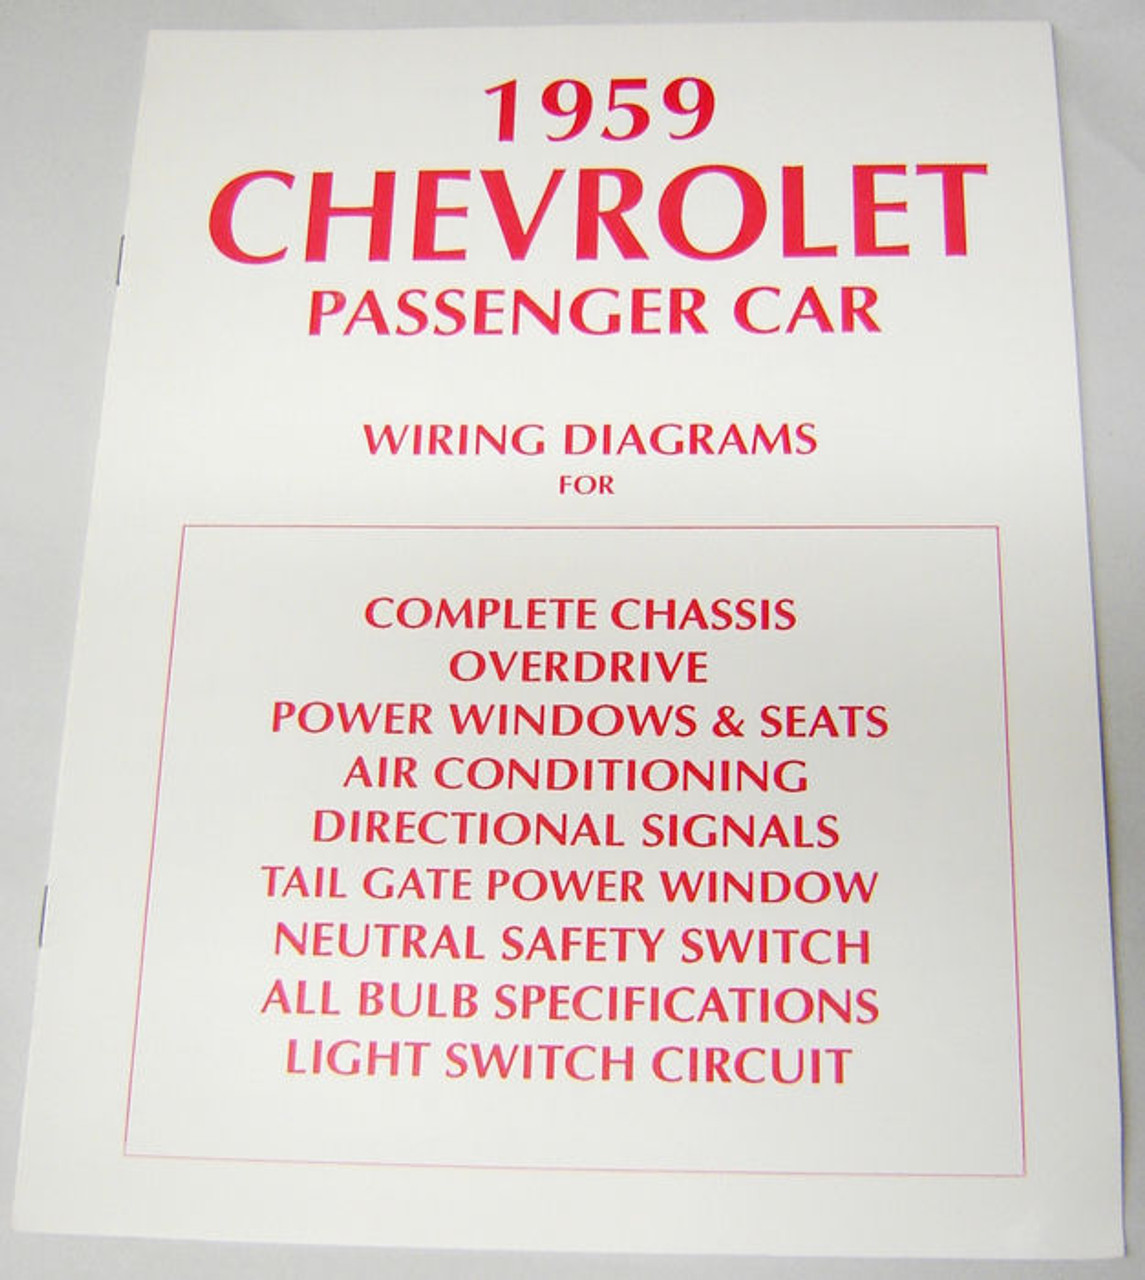 59 CHEVY IMPALA ELECTRICAL WIRING DIAGRAM MANUAL - I-5 Classic Chevy